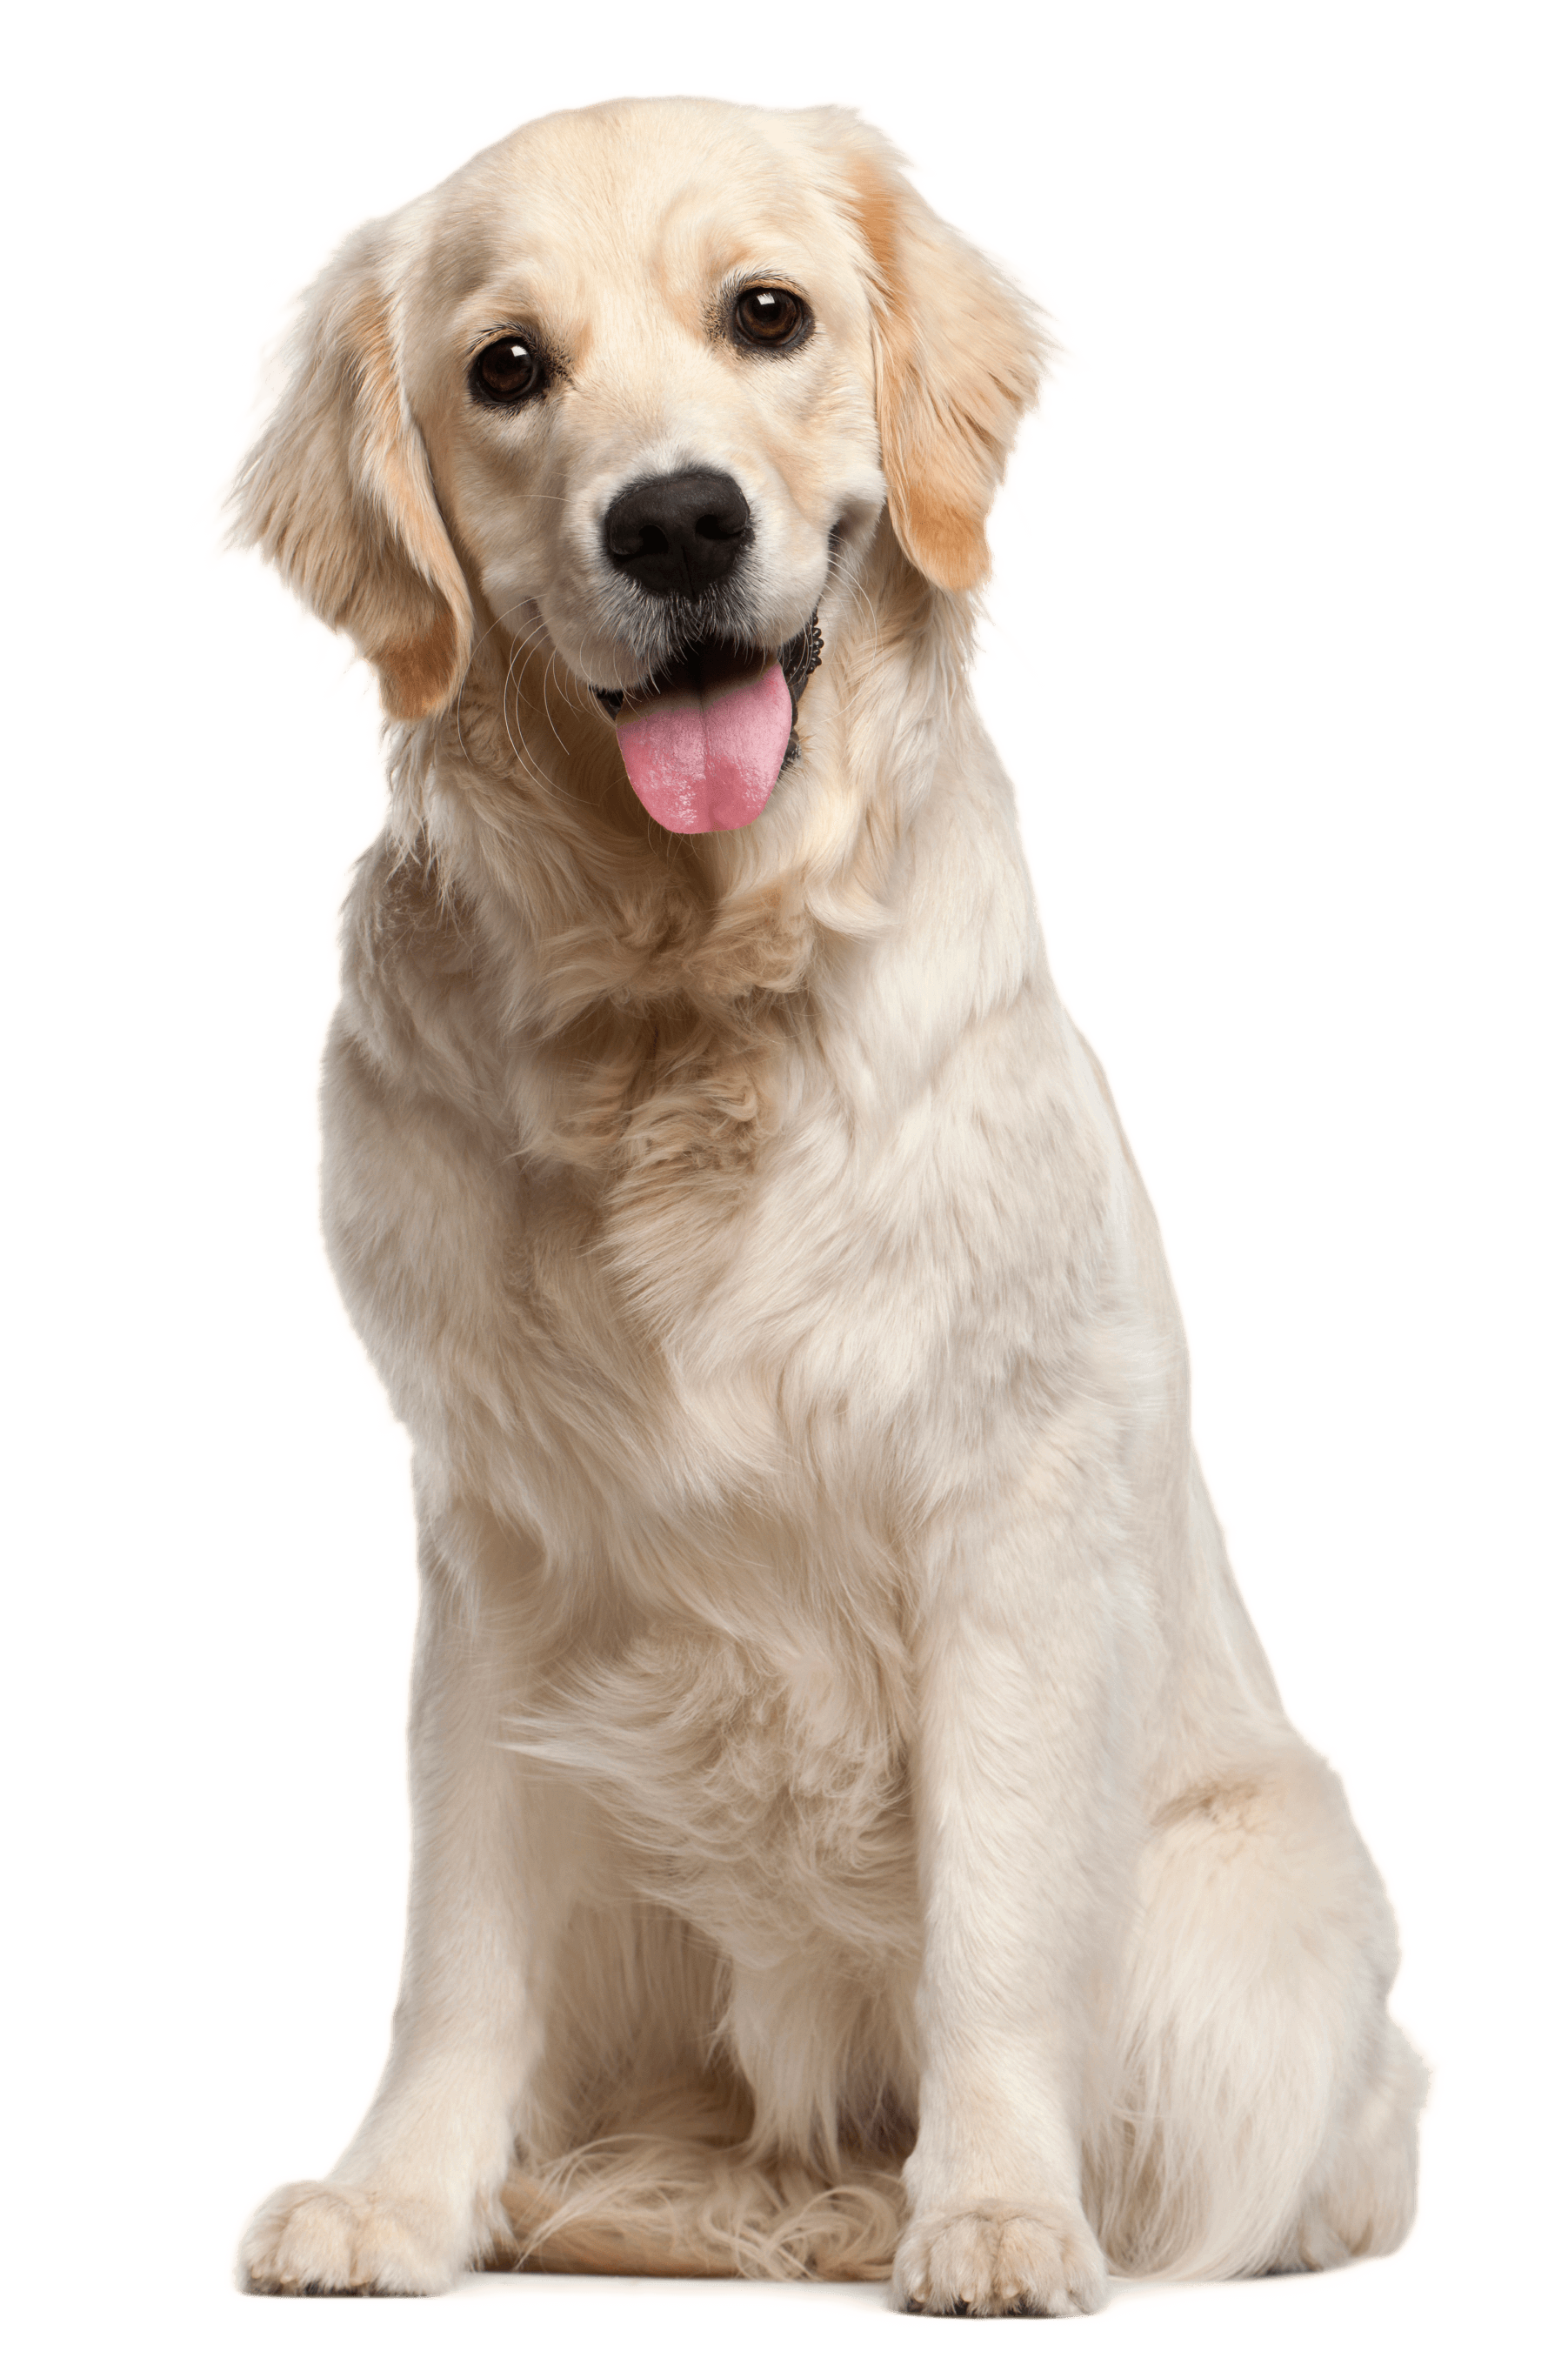 kisspng-dog-grooming-puppy-cat-pet-white-dog-5a70ac435552b0.5161753115173335713495